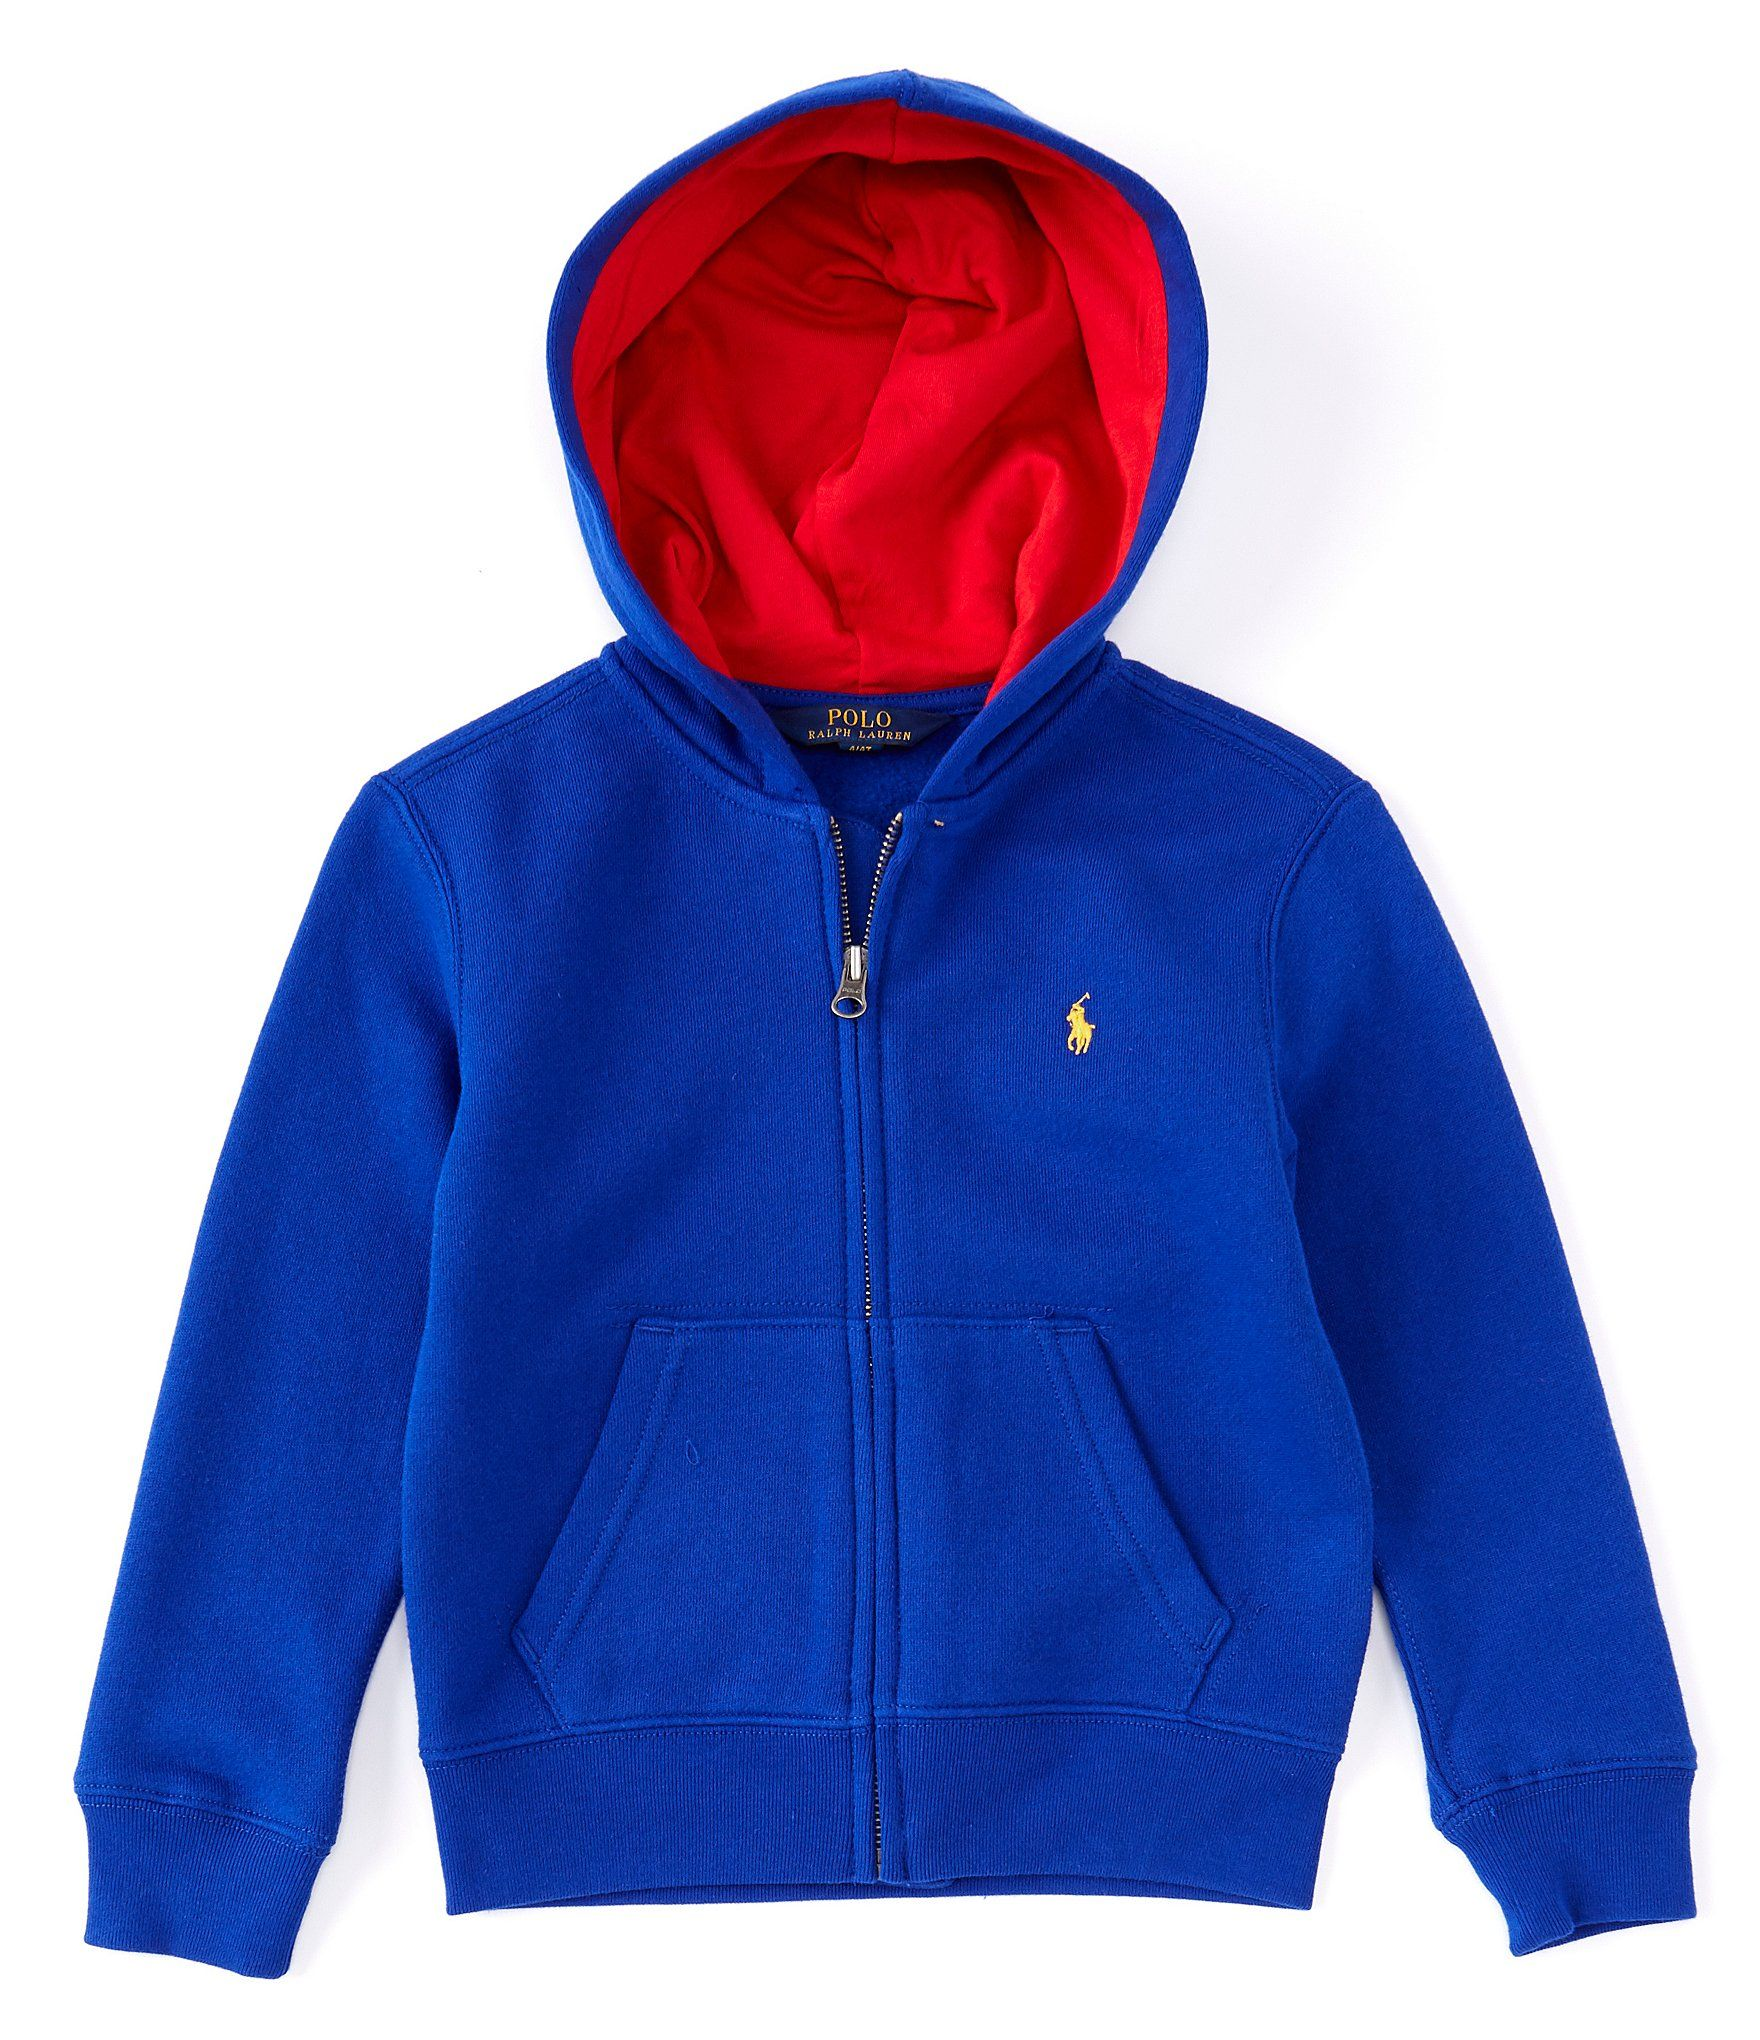 Polo Royal Blue Zip up Sweatshirt